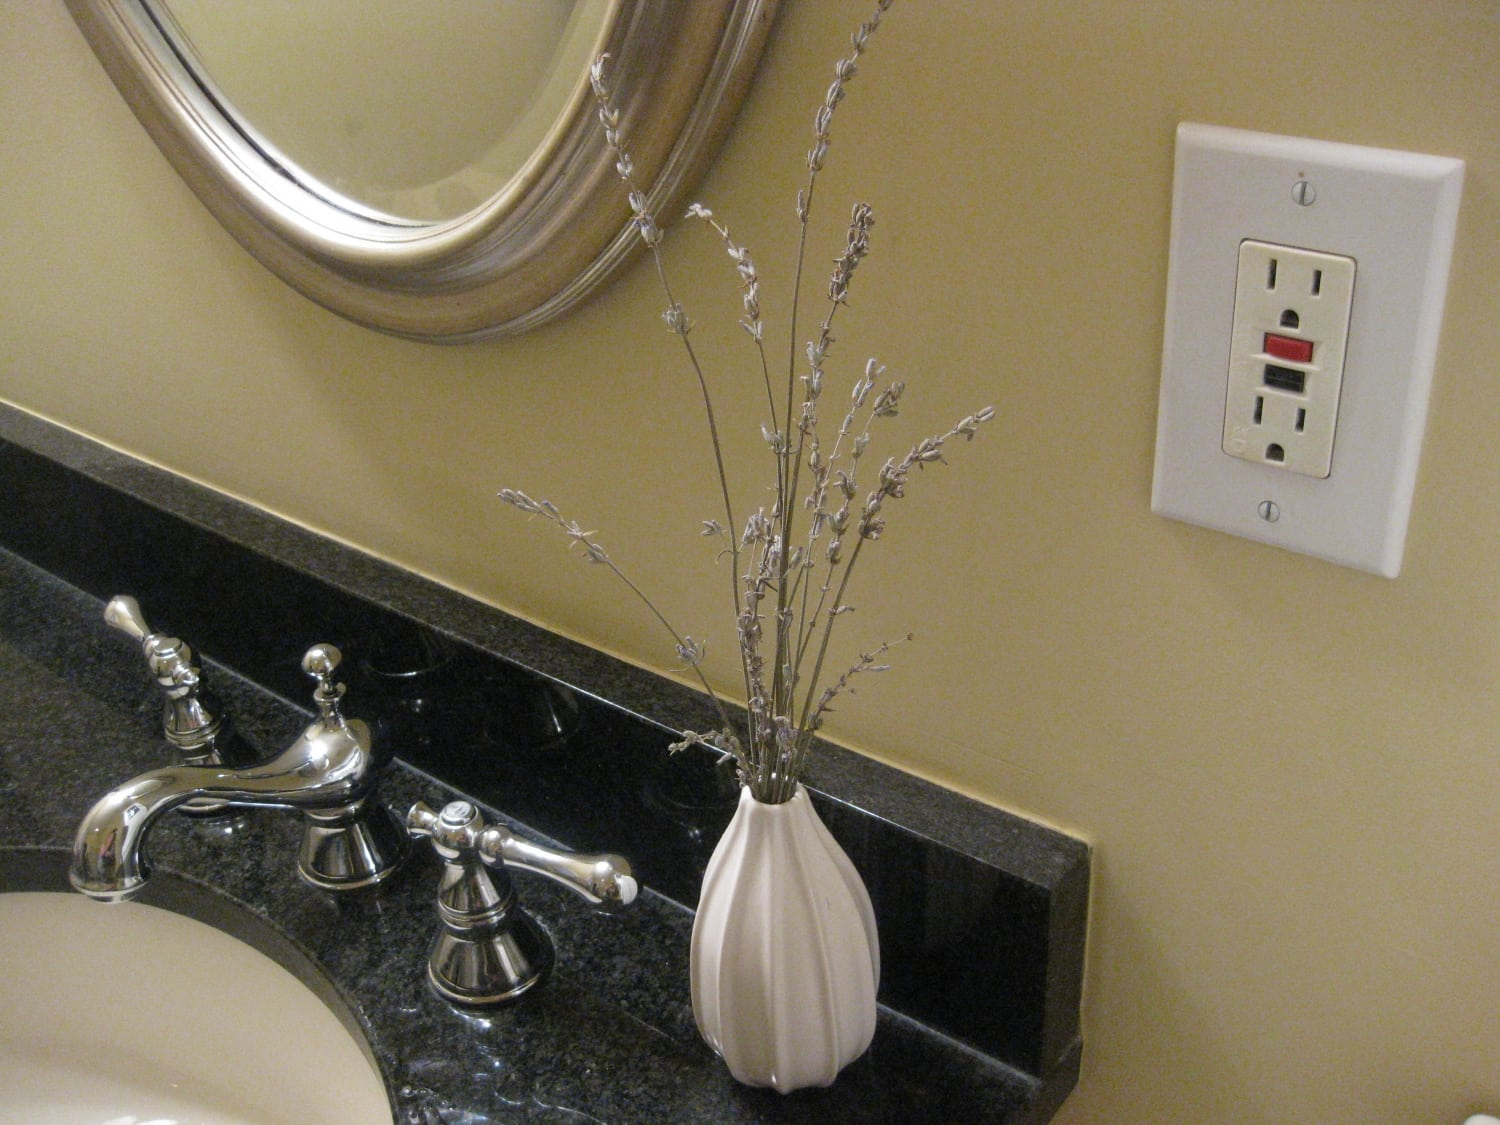 Bathroom Electrical Outlet Are You Grounded Gfci Outlets Can Help Tennessee Electric